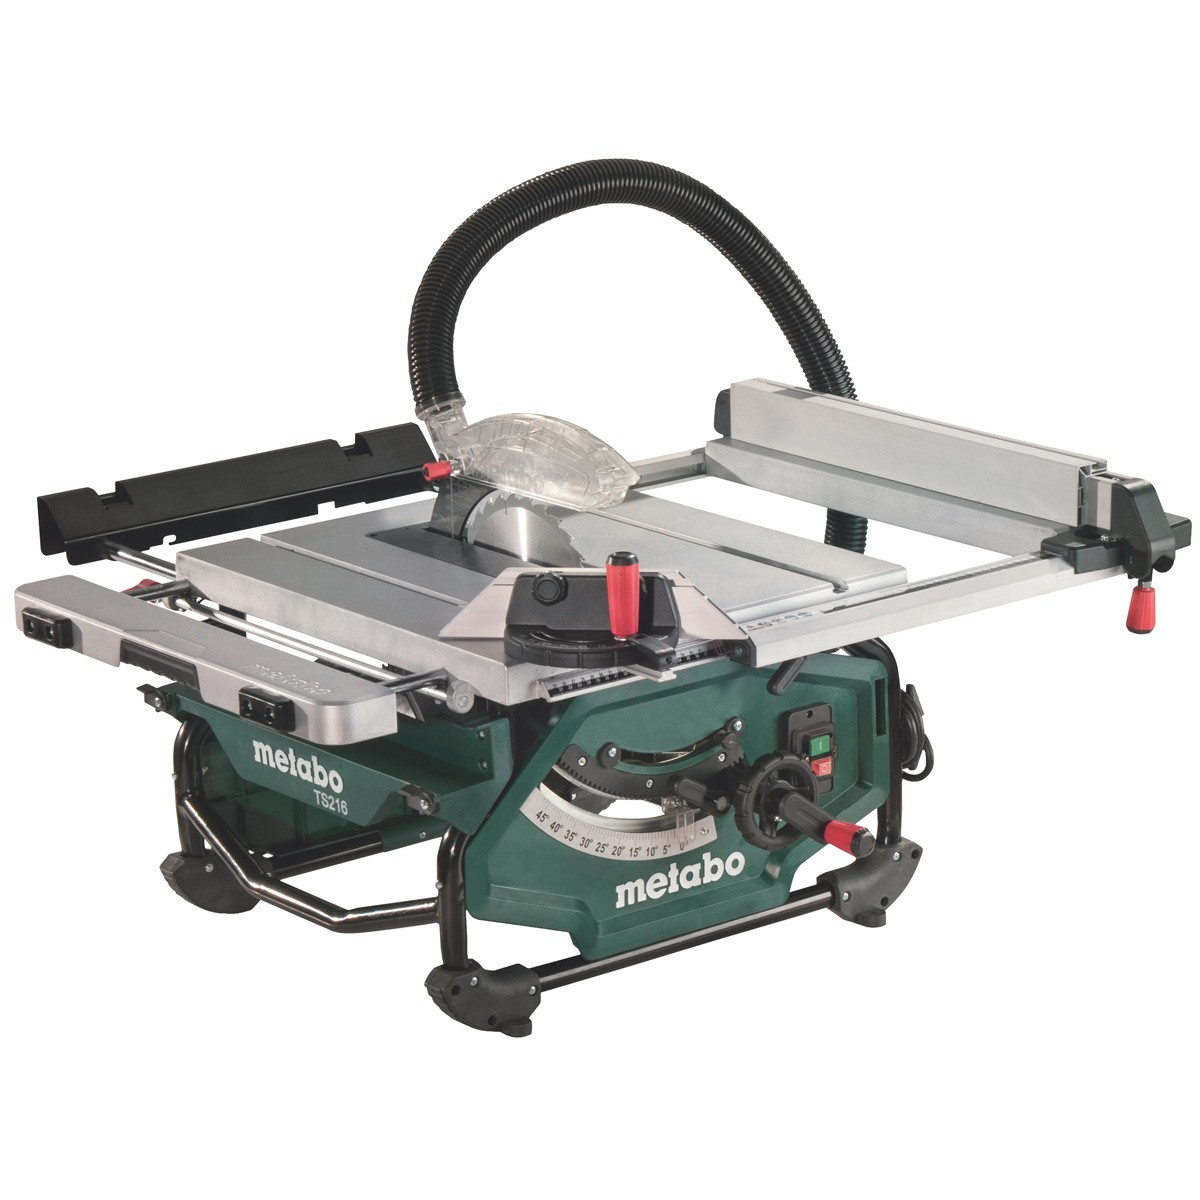 Metabo TS 216 Floor Table Circular Saw 240v